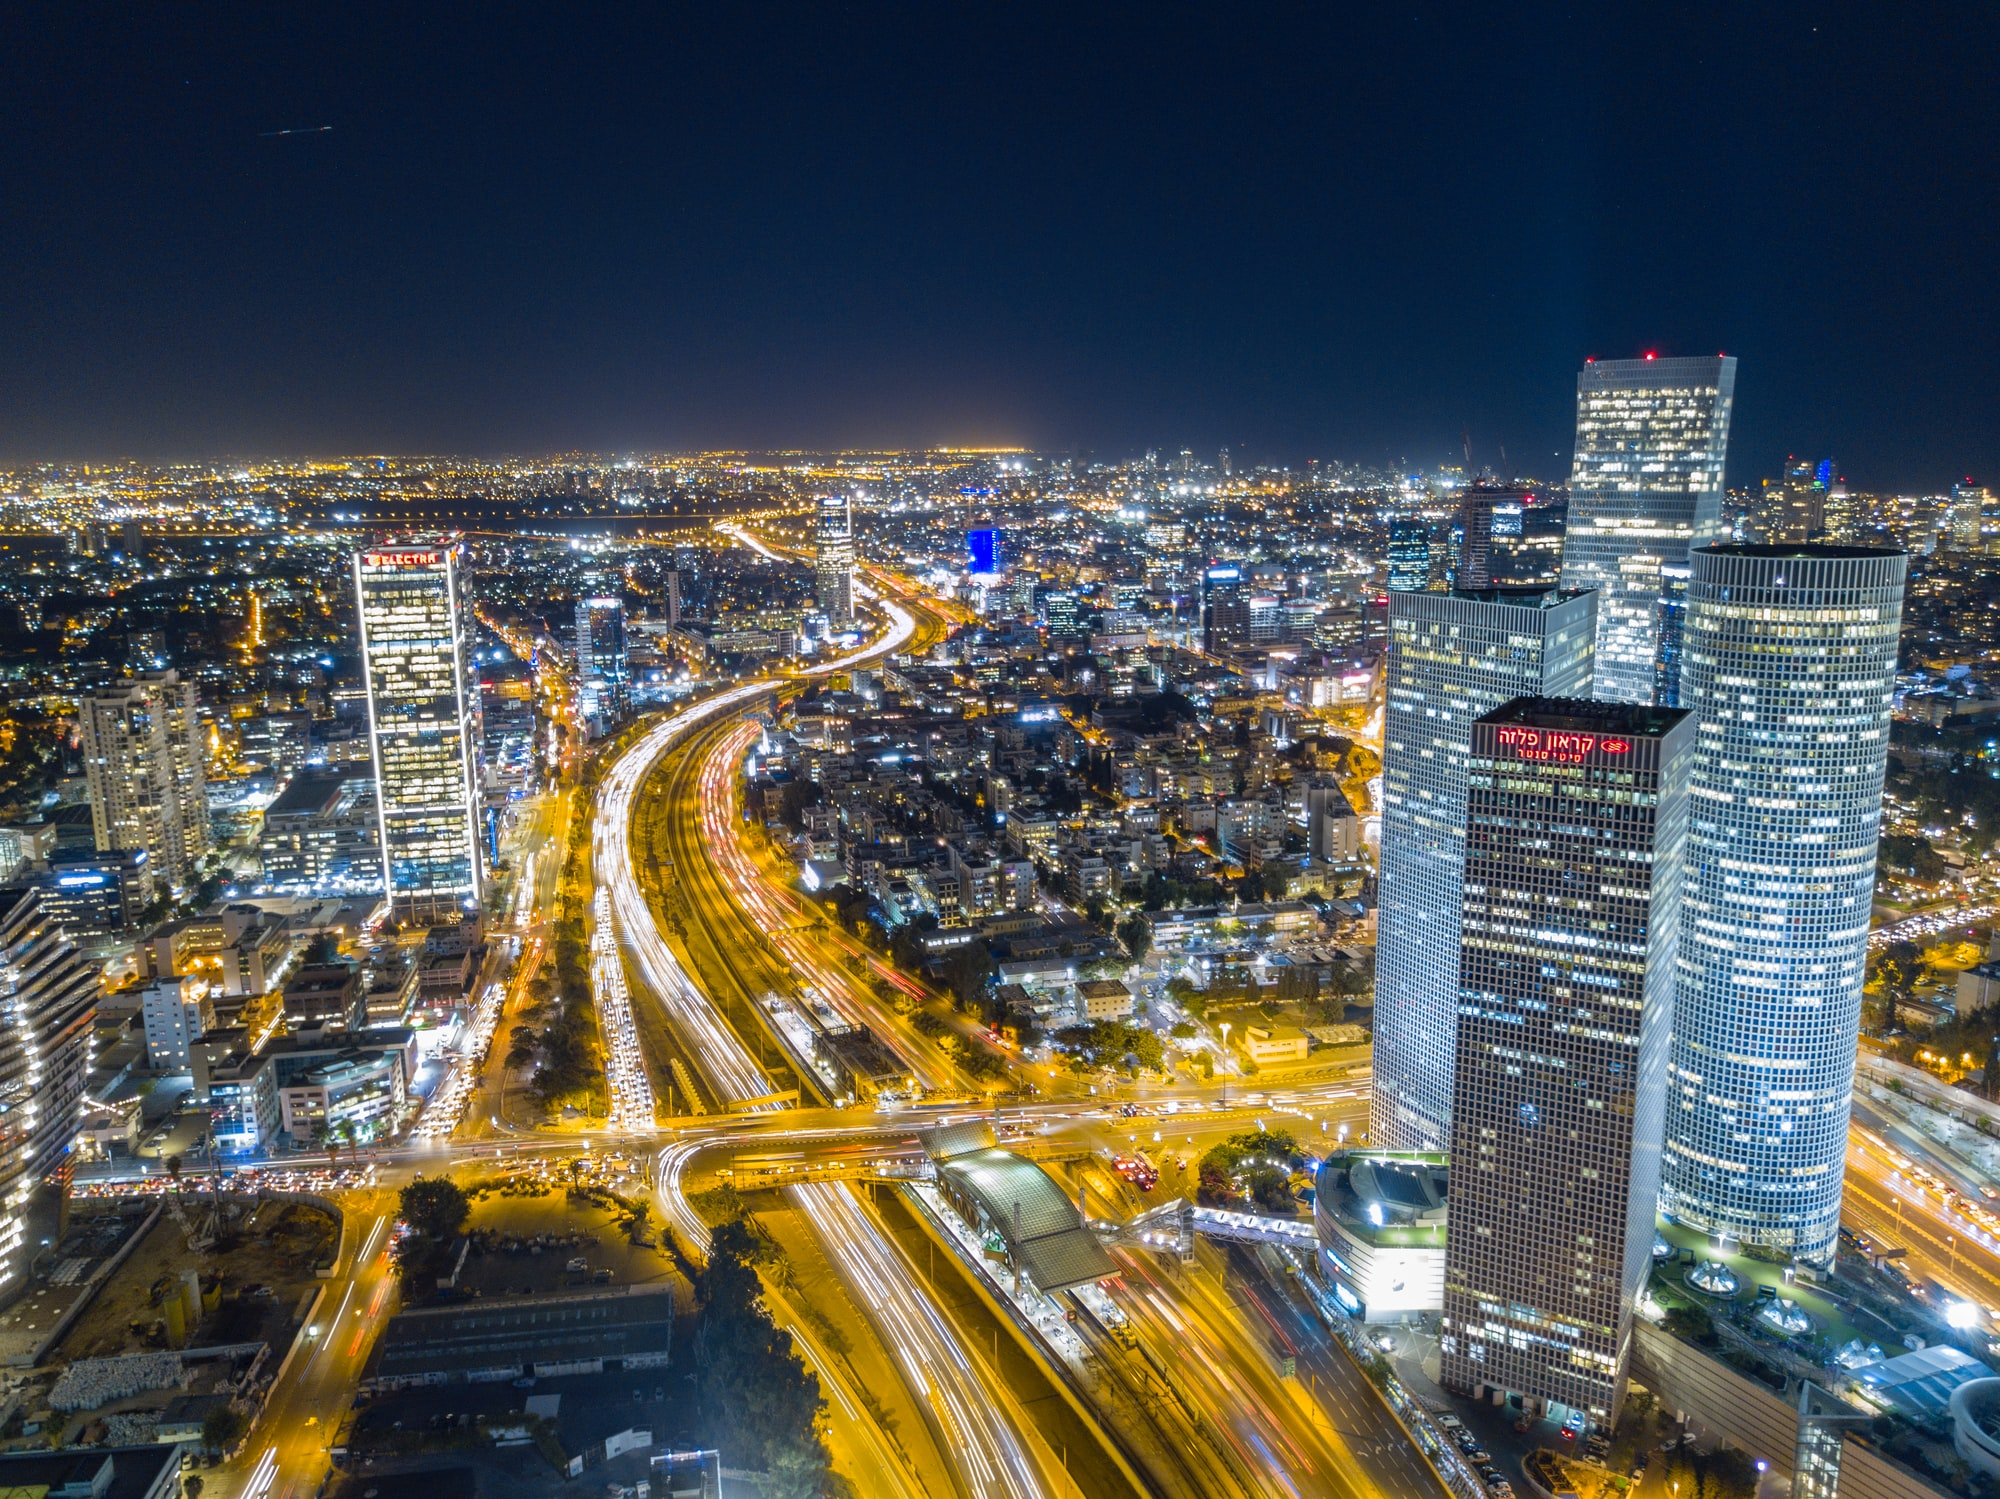 Startup Genome ranks Top 30 Startup Ecosystems: Tel Aviv stands strong among the best